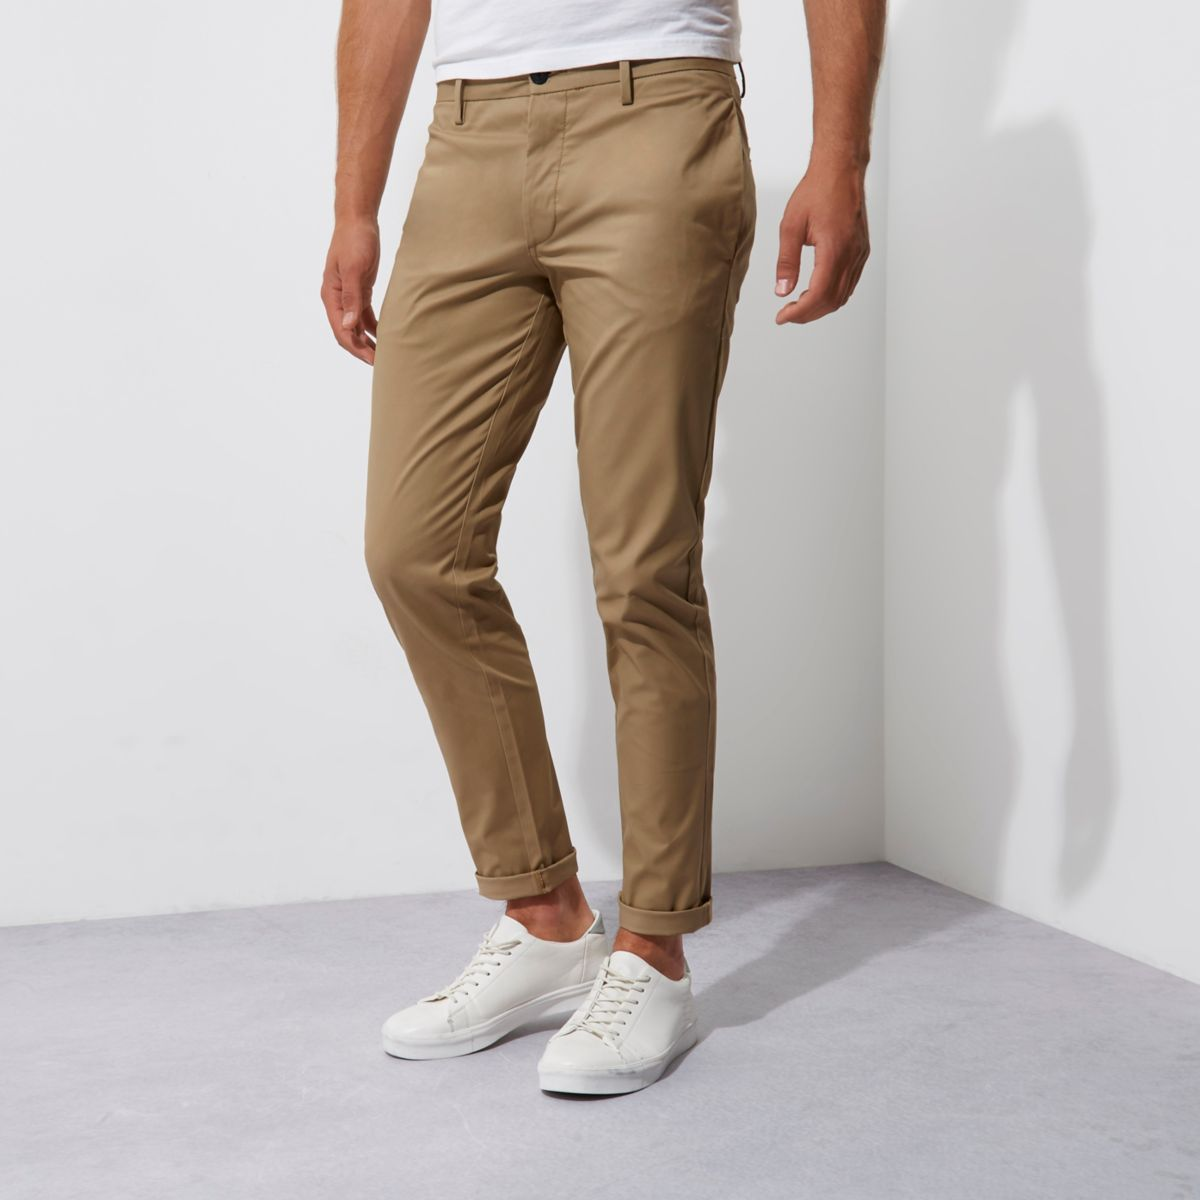 Slim Stretch Jeans At River Island